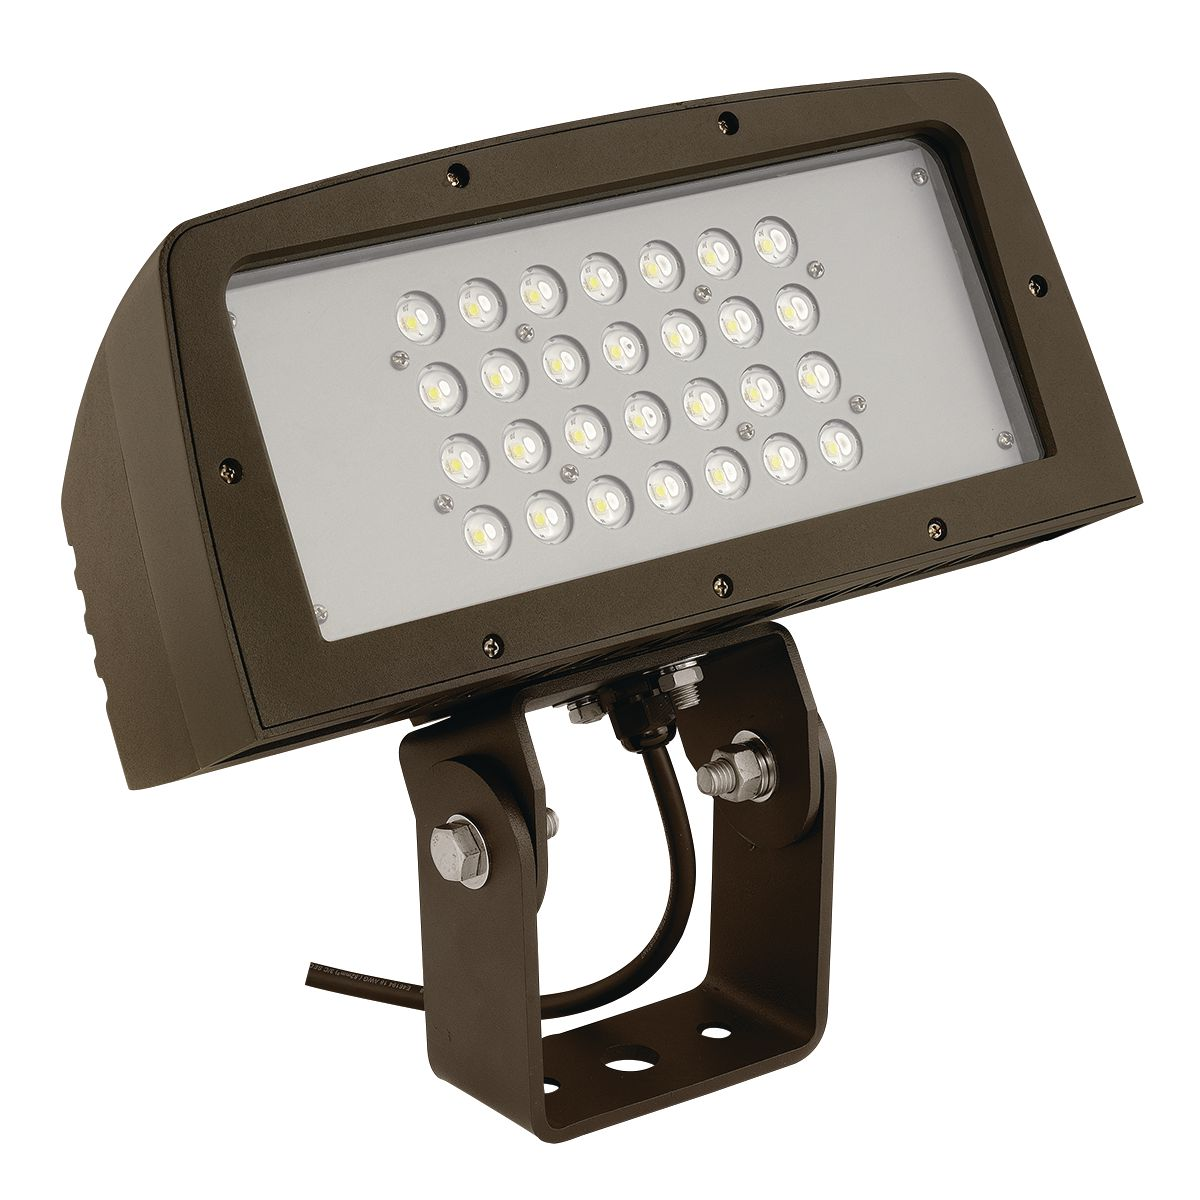 FLL 28 & 140 LED Floodlight